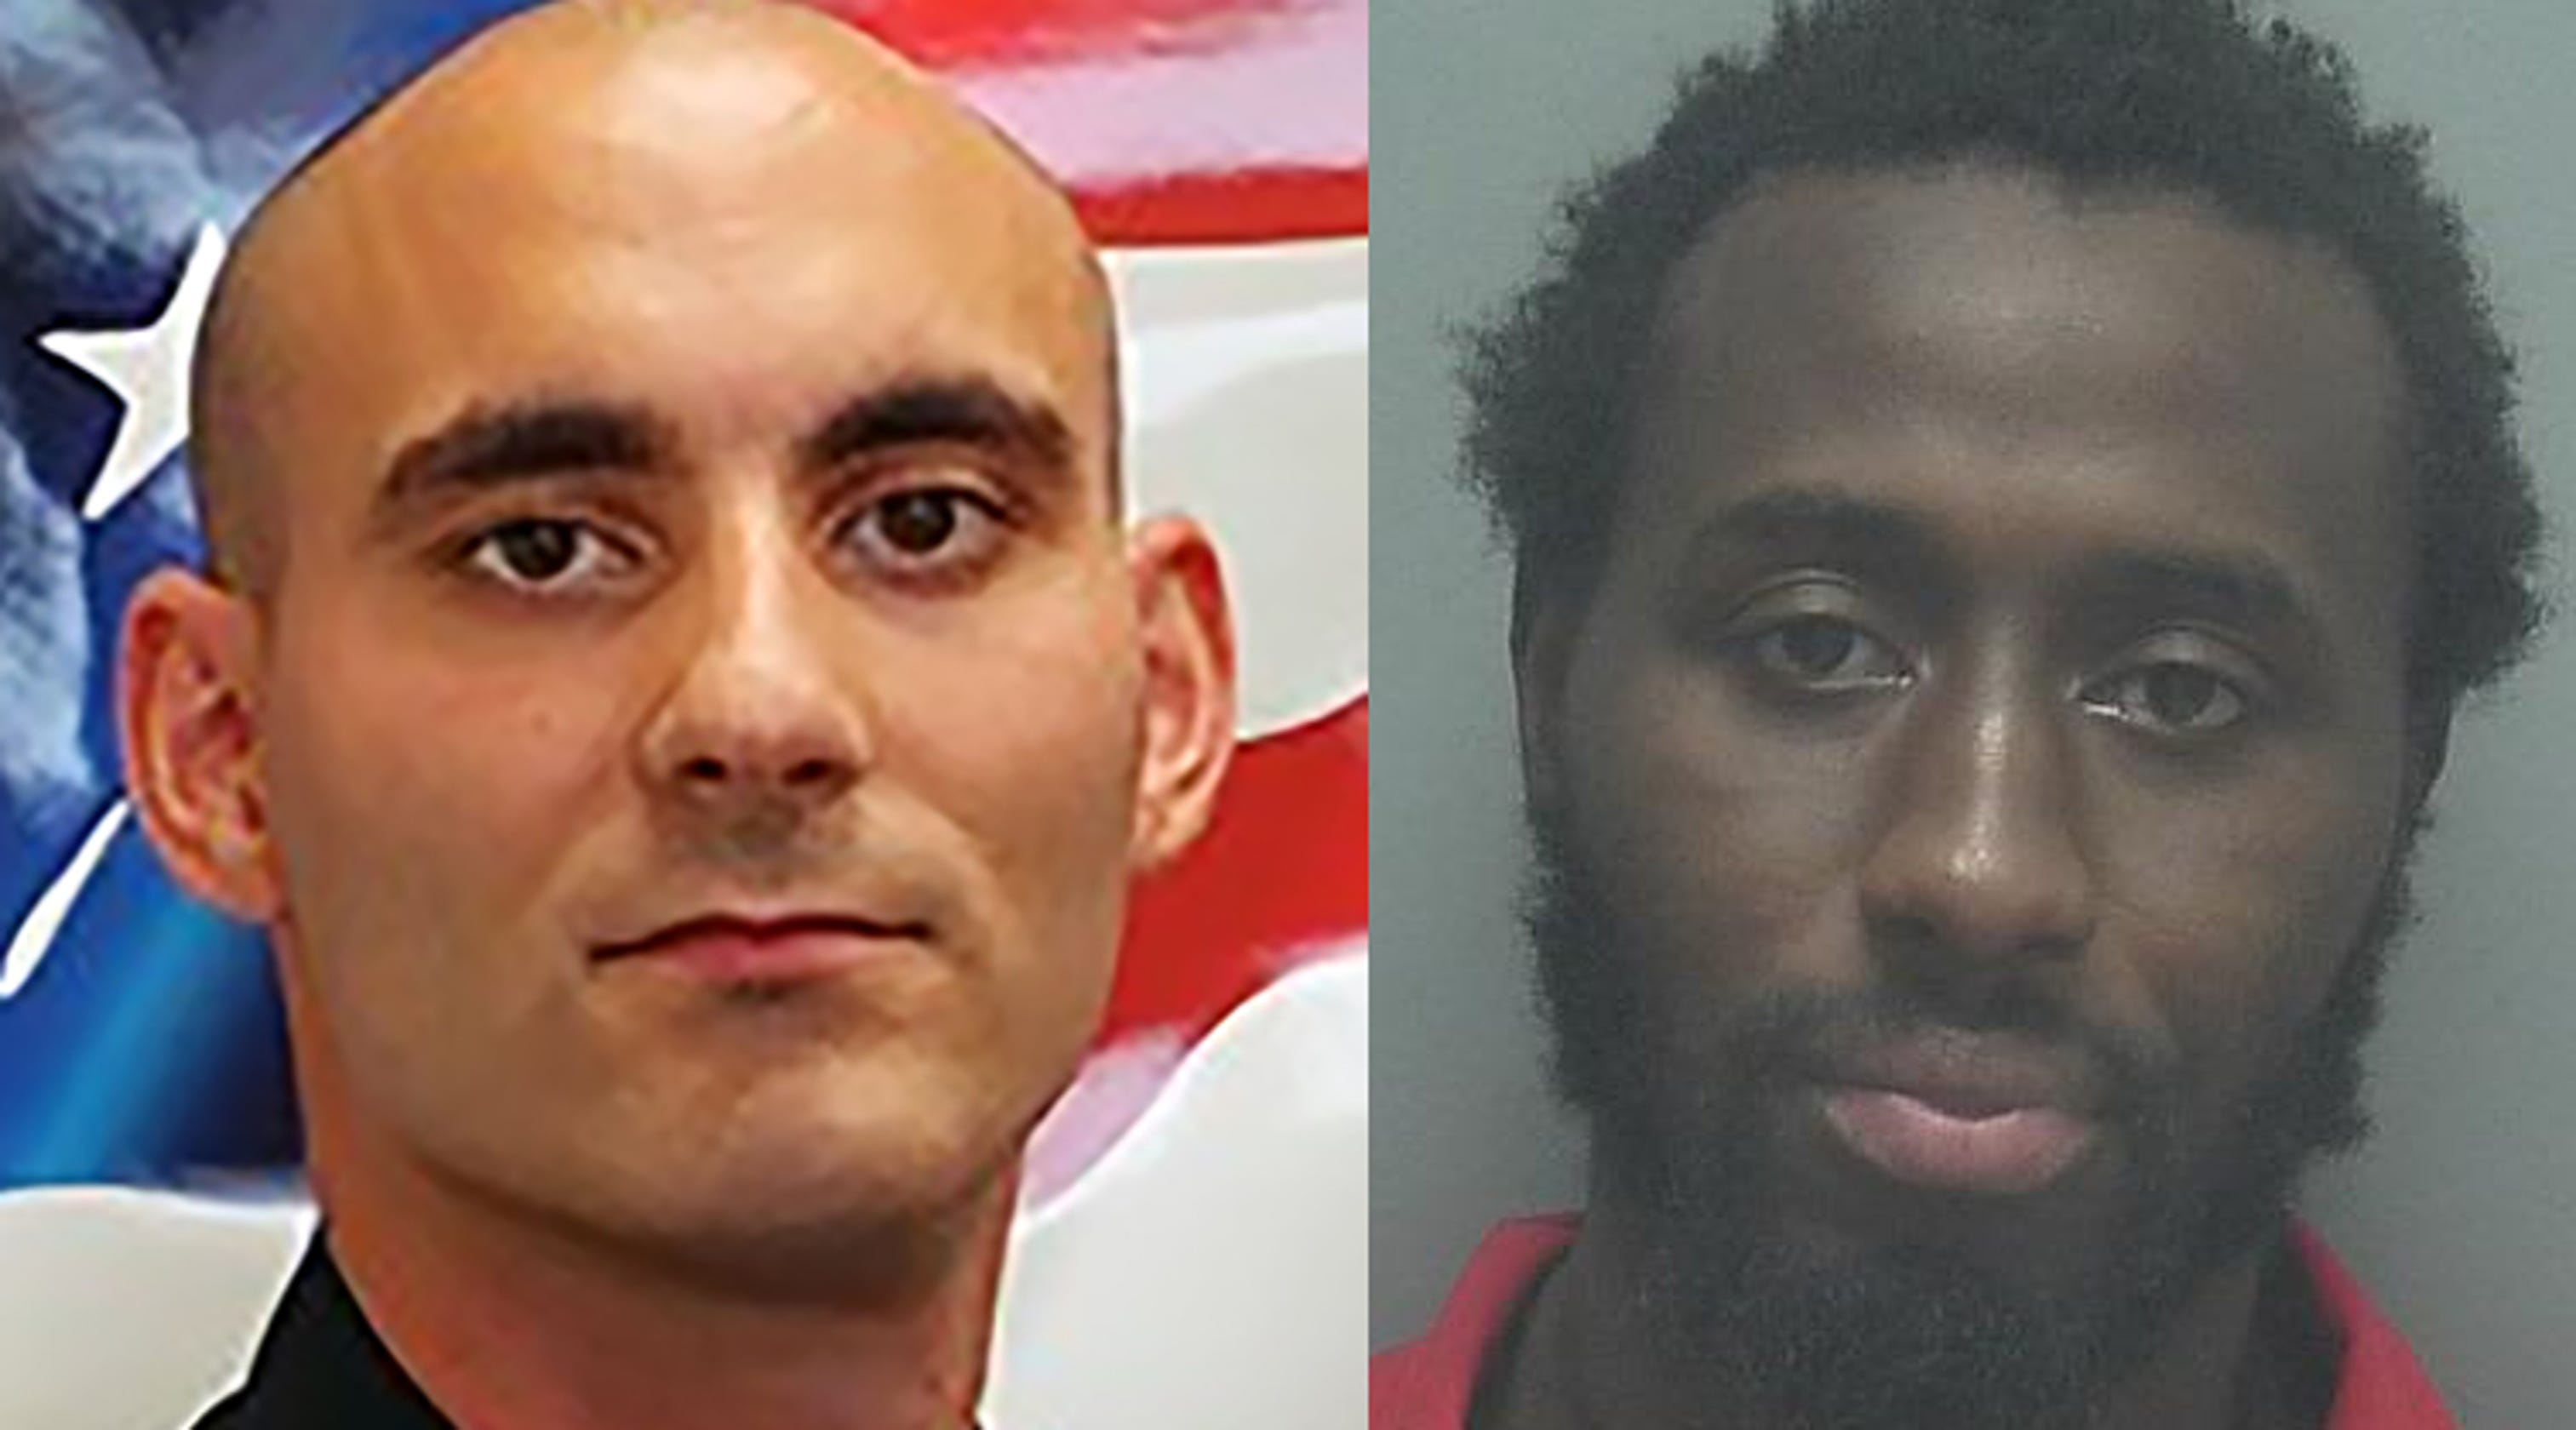 More than 40 homicides in Lee County include police officer